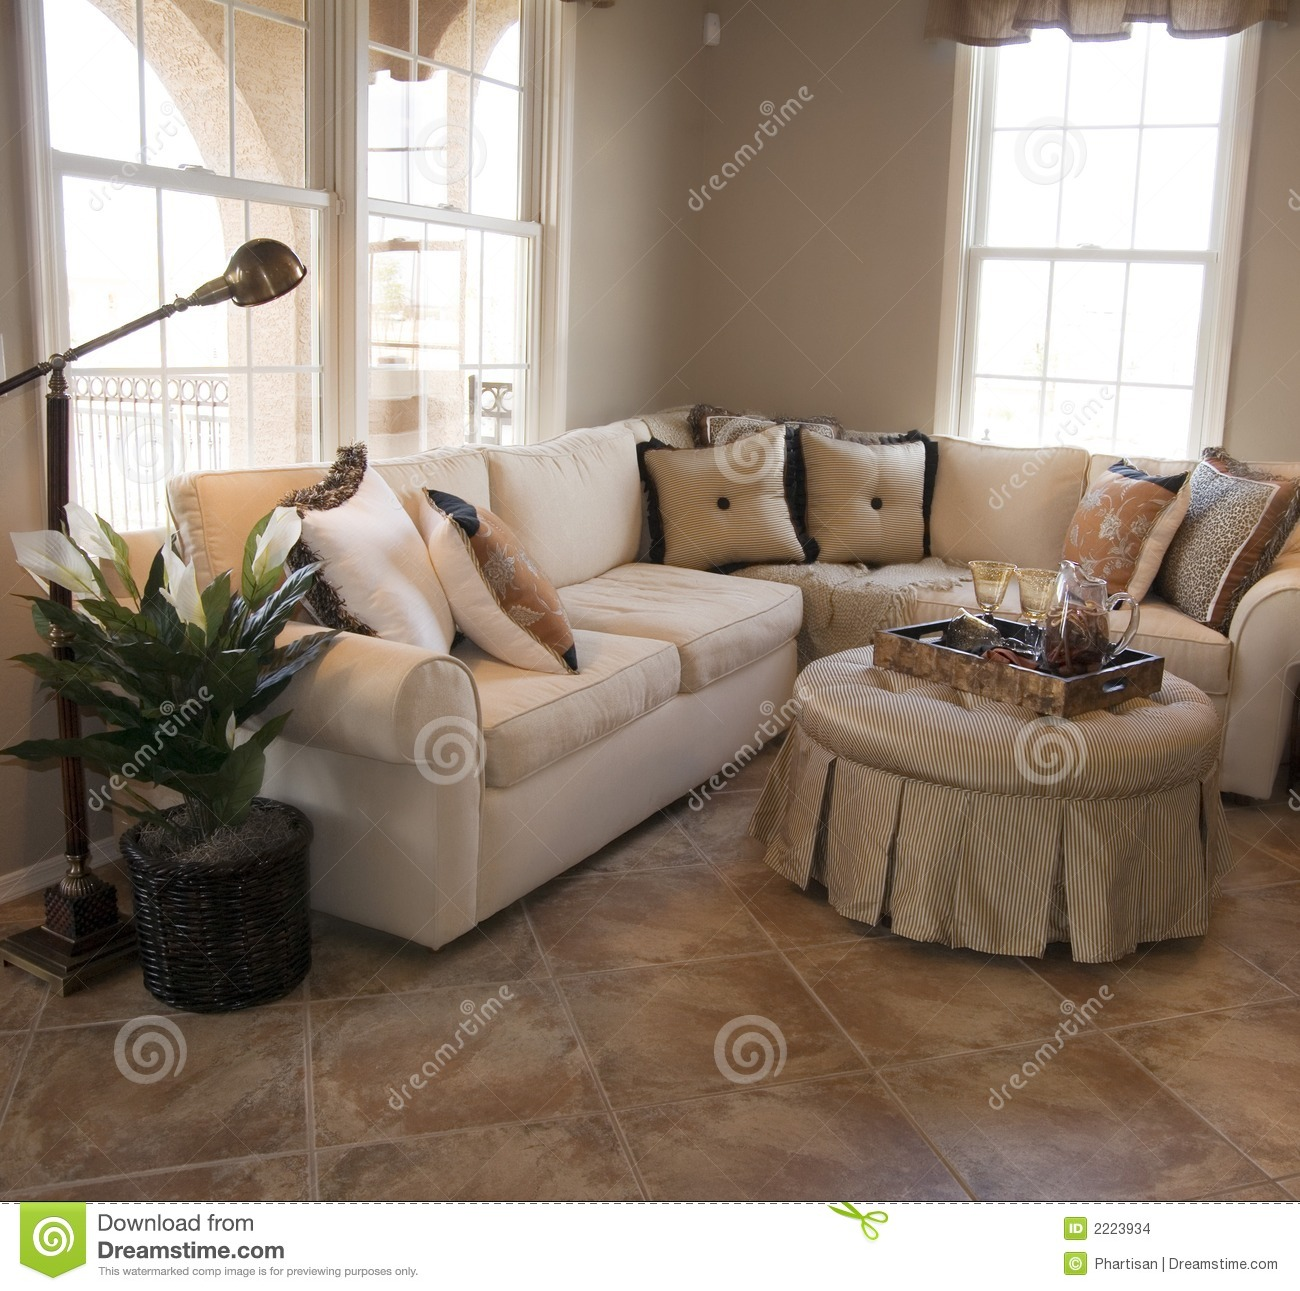 model home interior design stock images - Model Home Interior Design